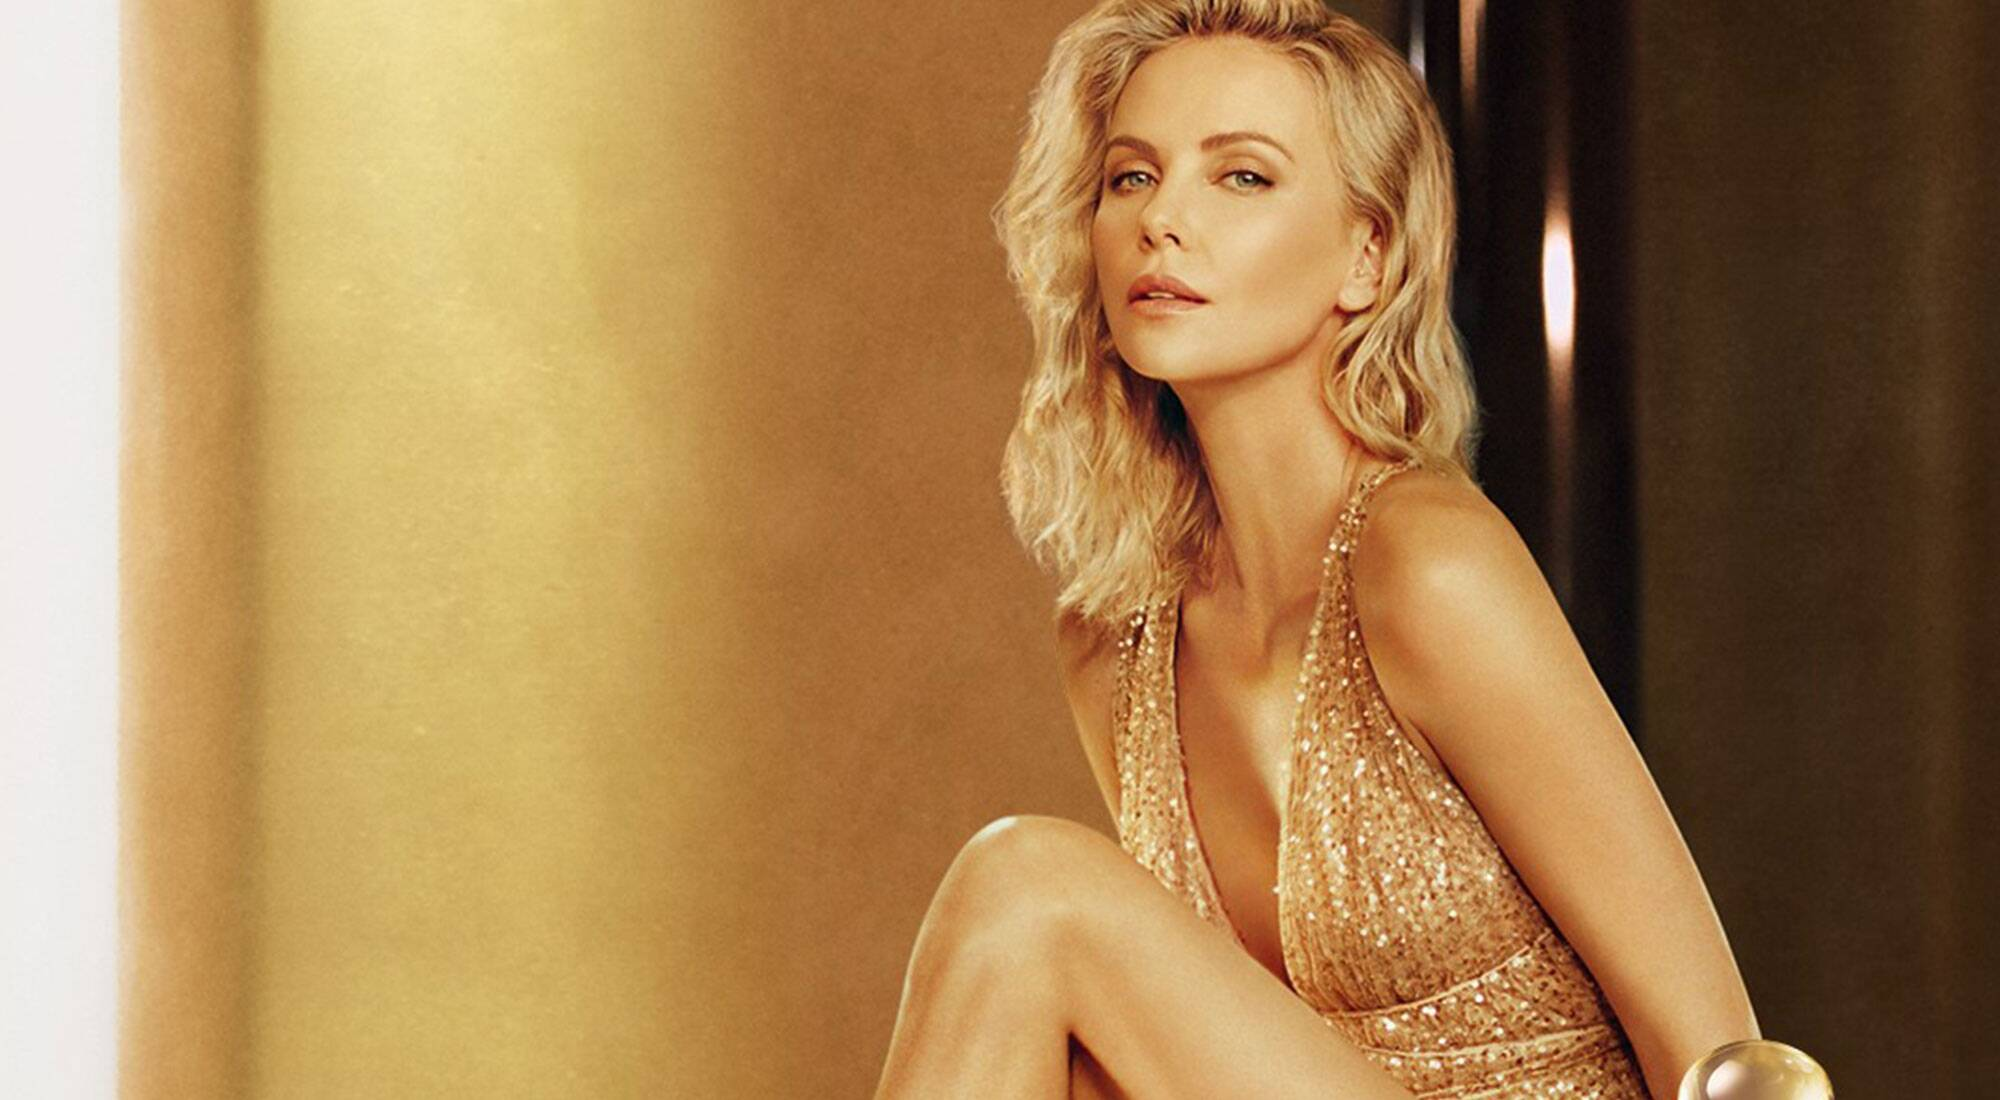 Charlize Theron a triumphant muse in the new campaign for Jadore Absolu by Parfums Christian Dior